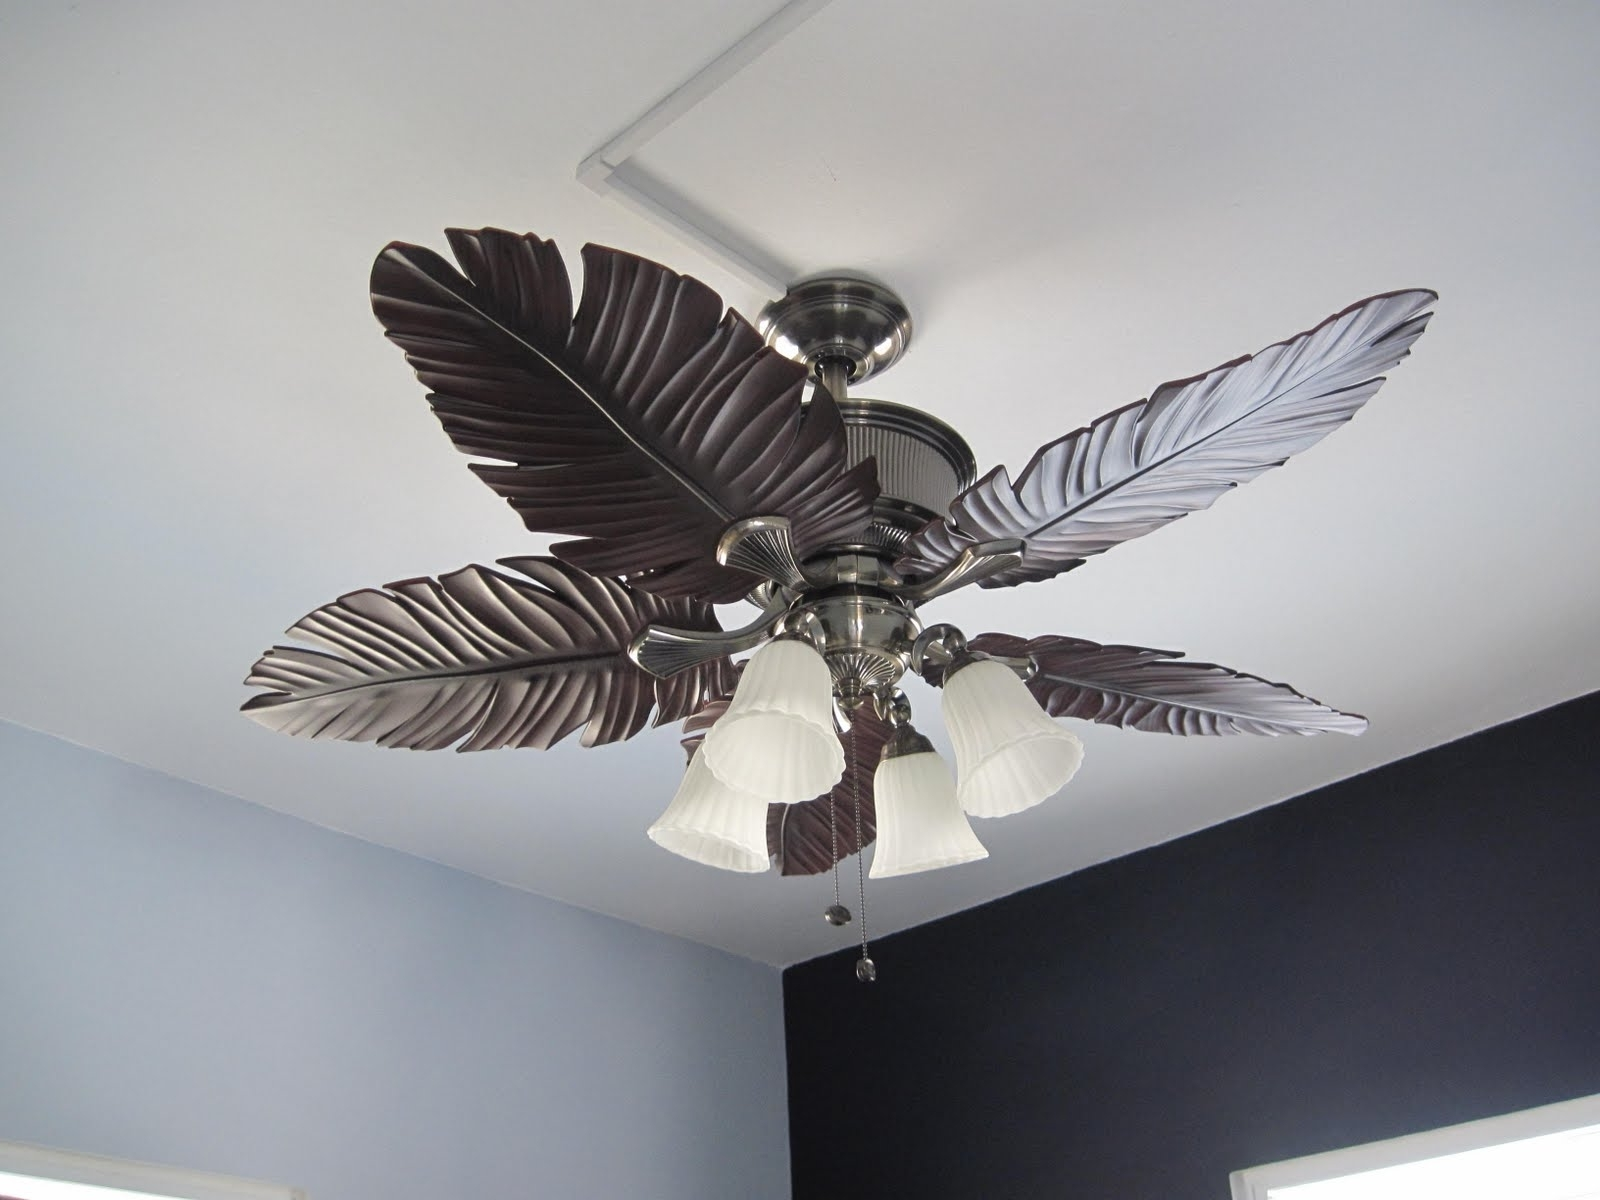 Famous Ceiling Lights : Tropical Ceiling Fans With Lights For Low Ceilings With Regard To Tropical Outdoor Ceiling Fans With Lights (View 5 of 20)